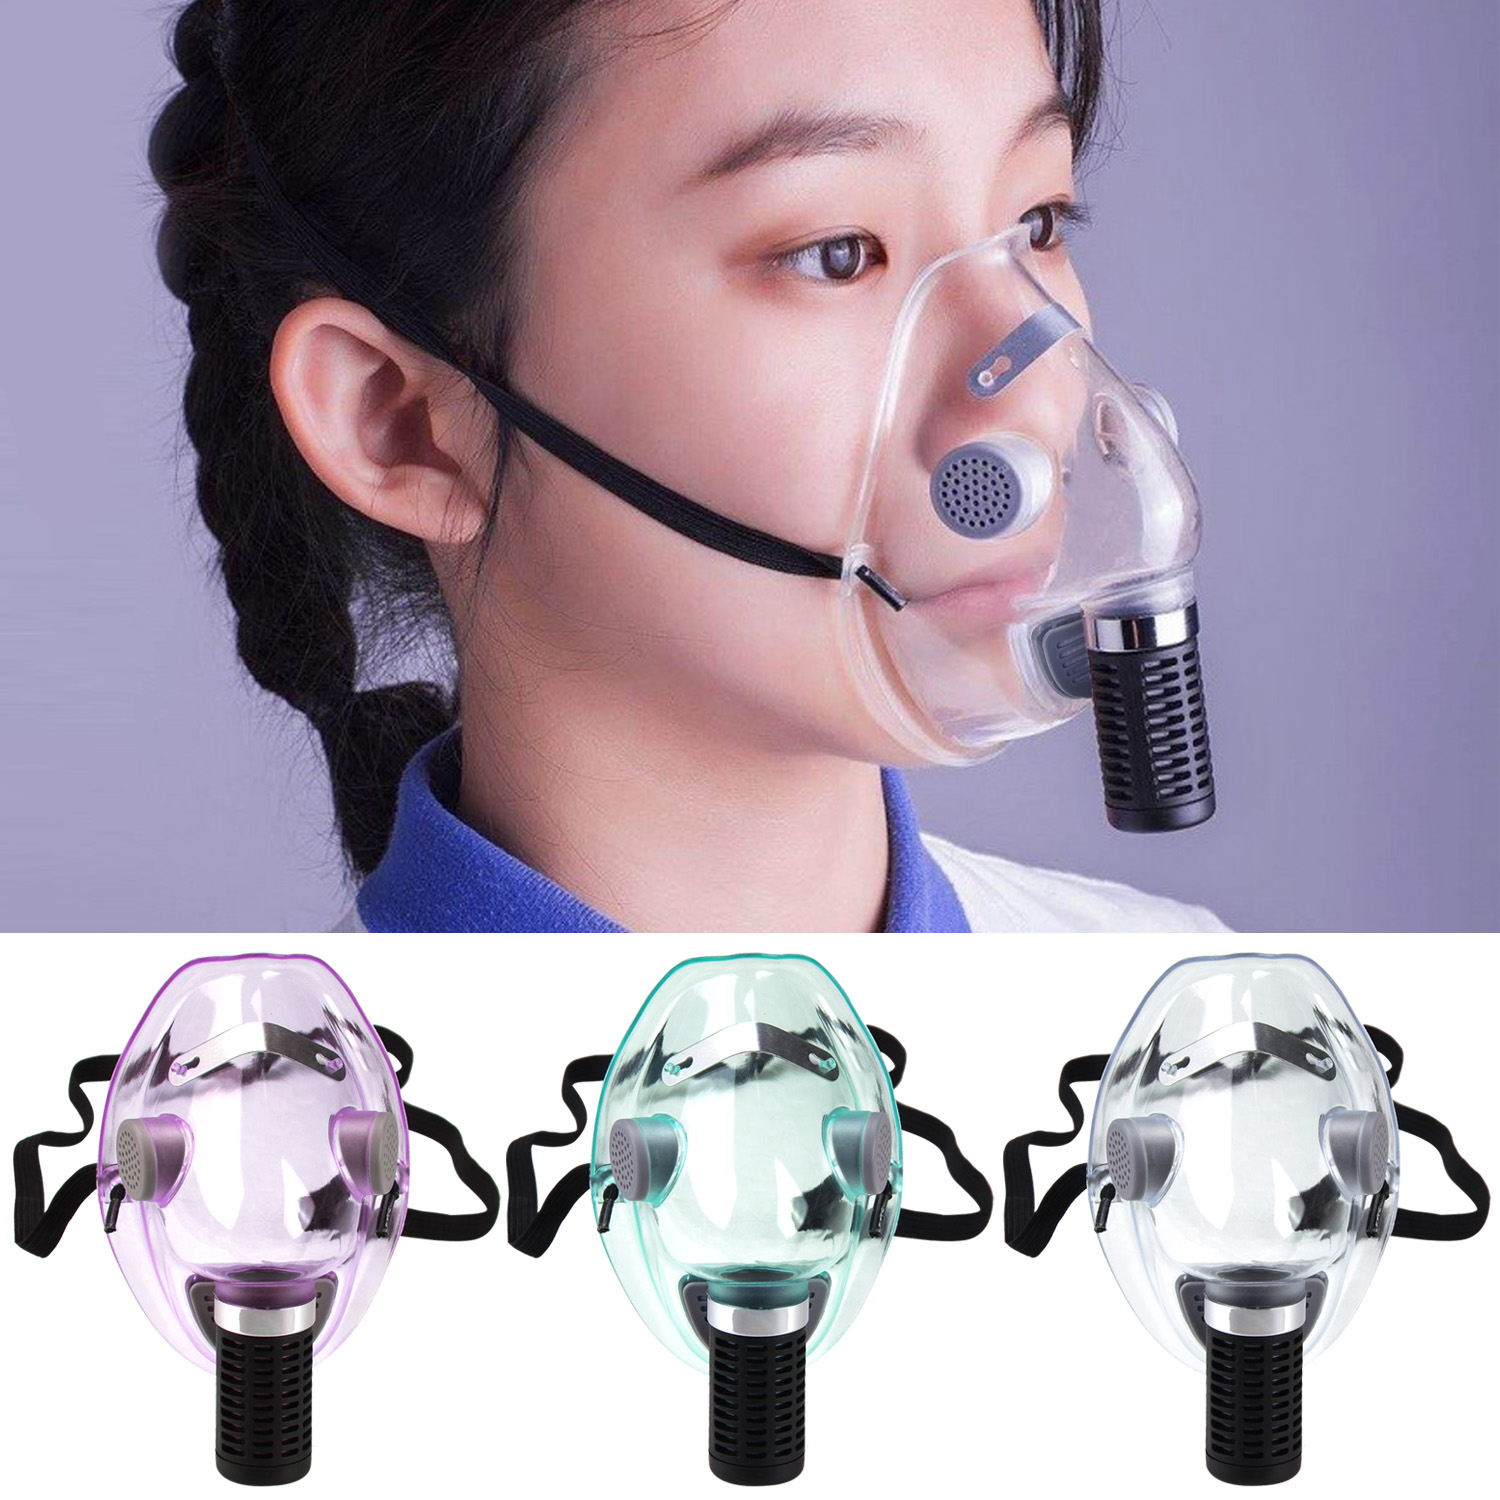 Reusable Silicone Face Masks Anti Dust Saliva Protective Mouth Mask Personal Protective Equipment With Filter For Outdoor Indoor